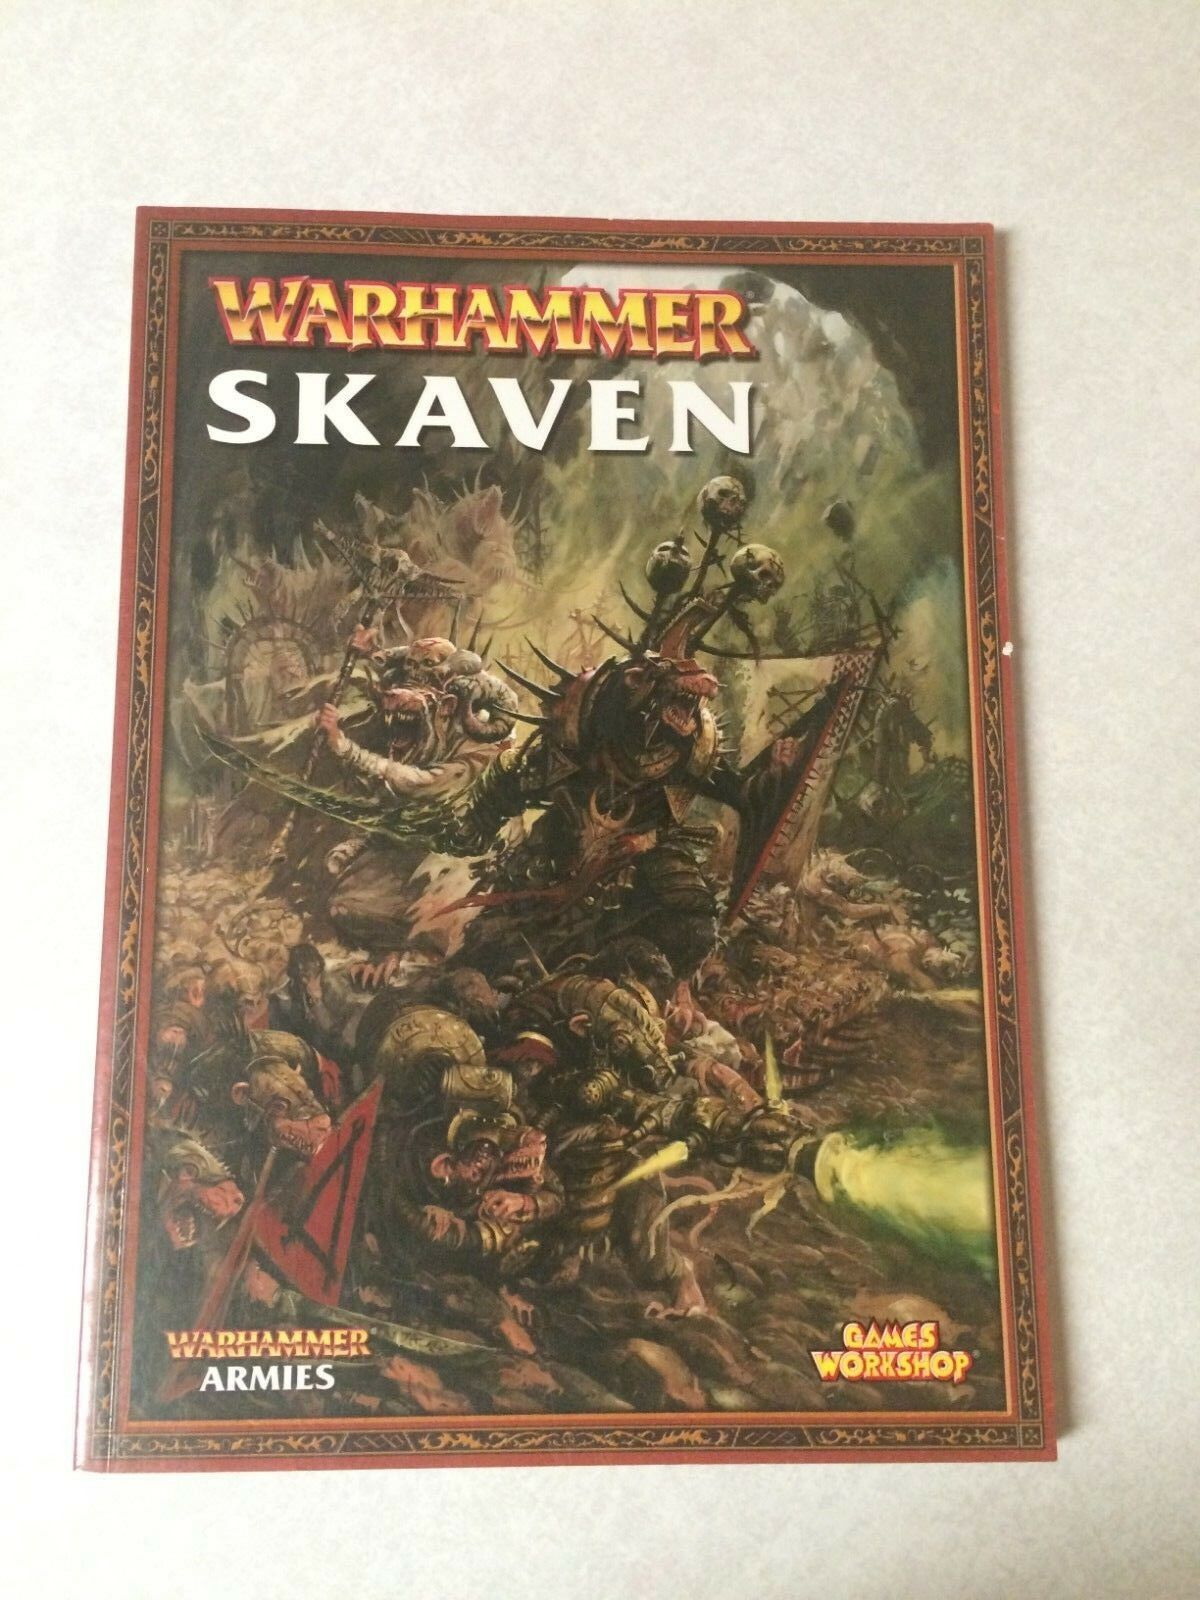 Warhammer Fantasy Armies Skaven Army Book Softcover New Mint